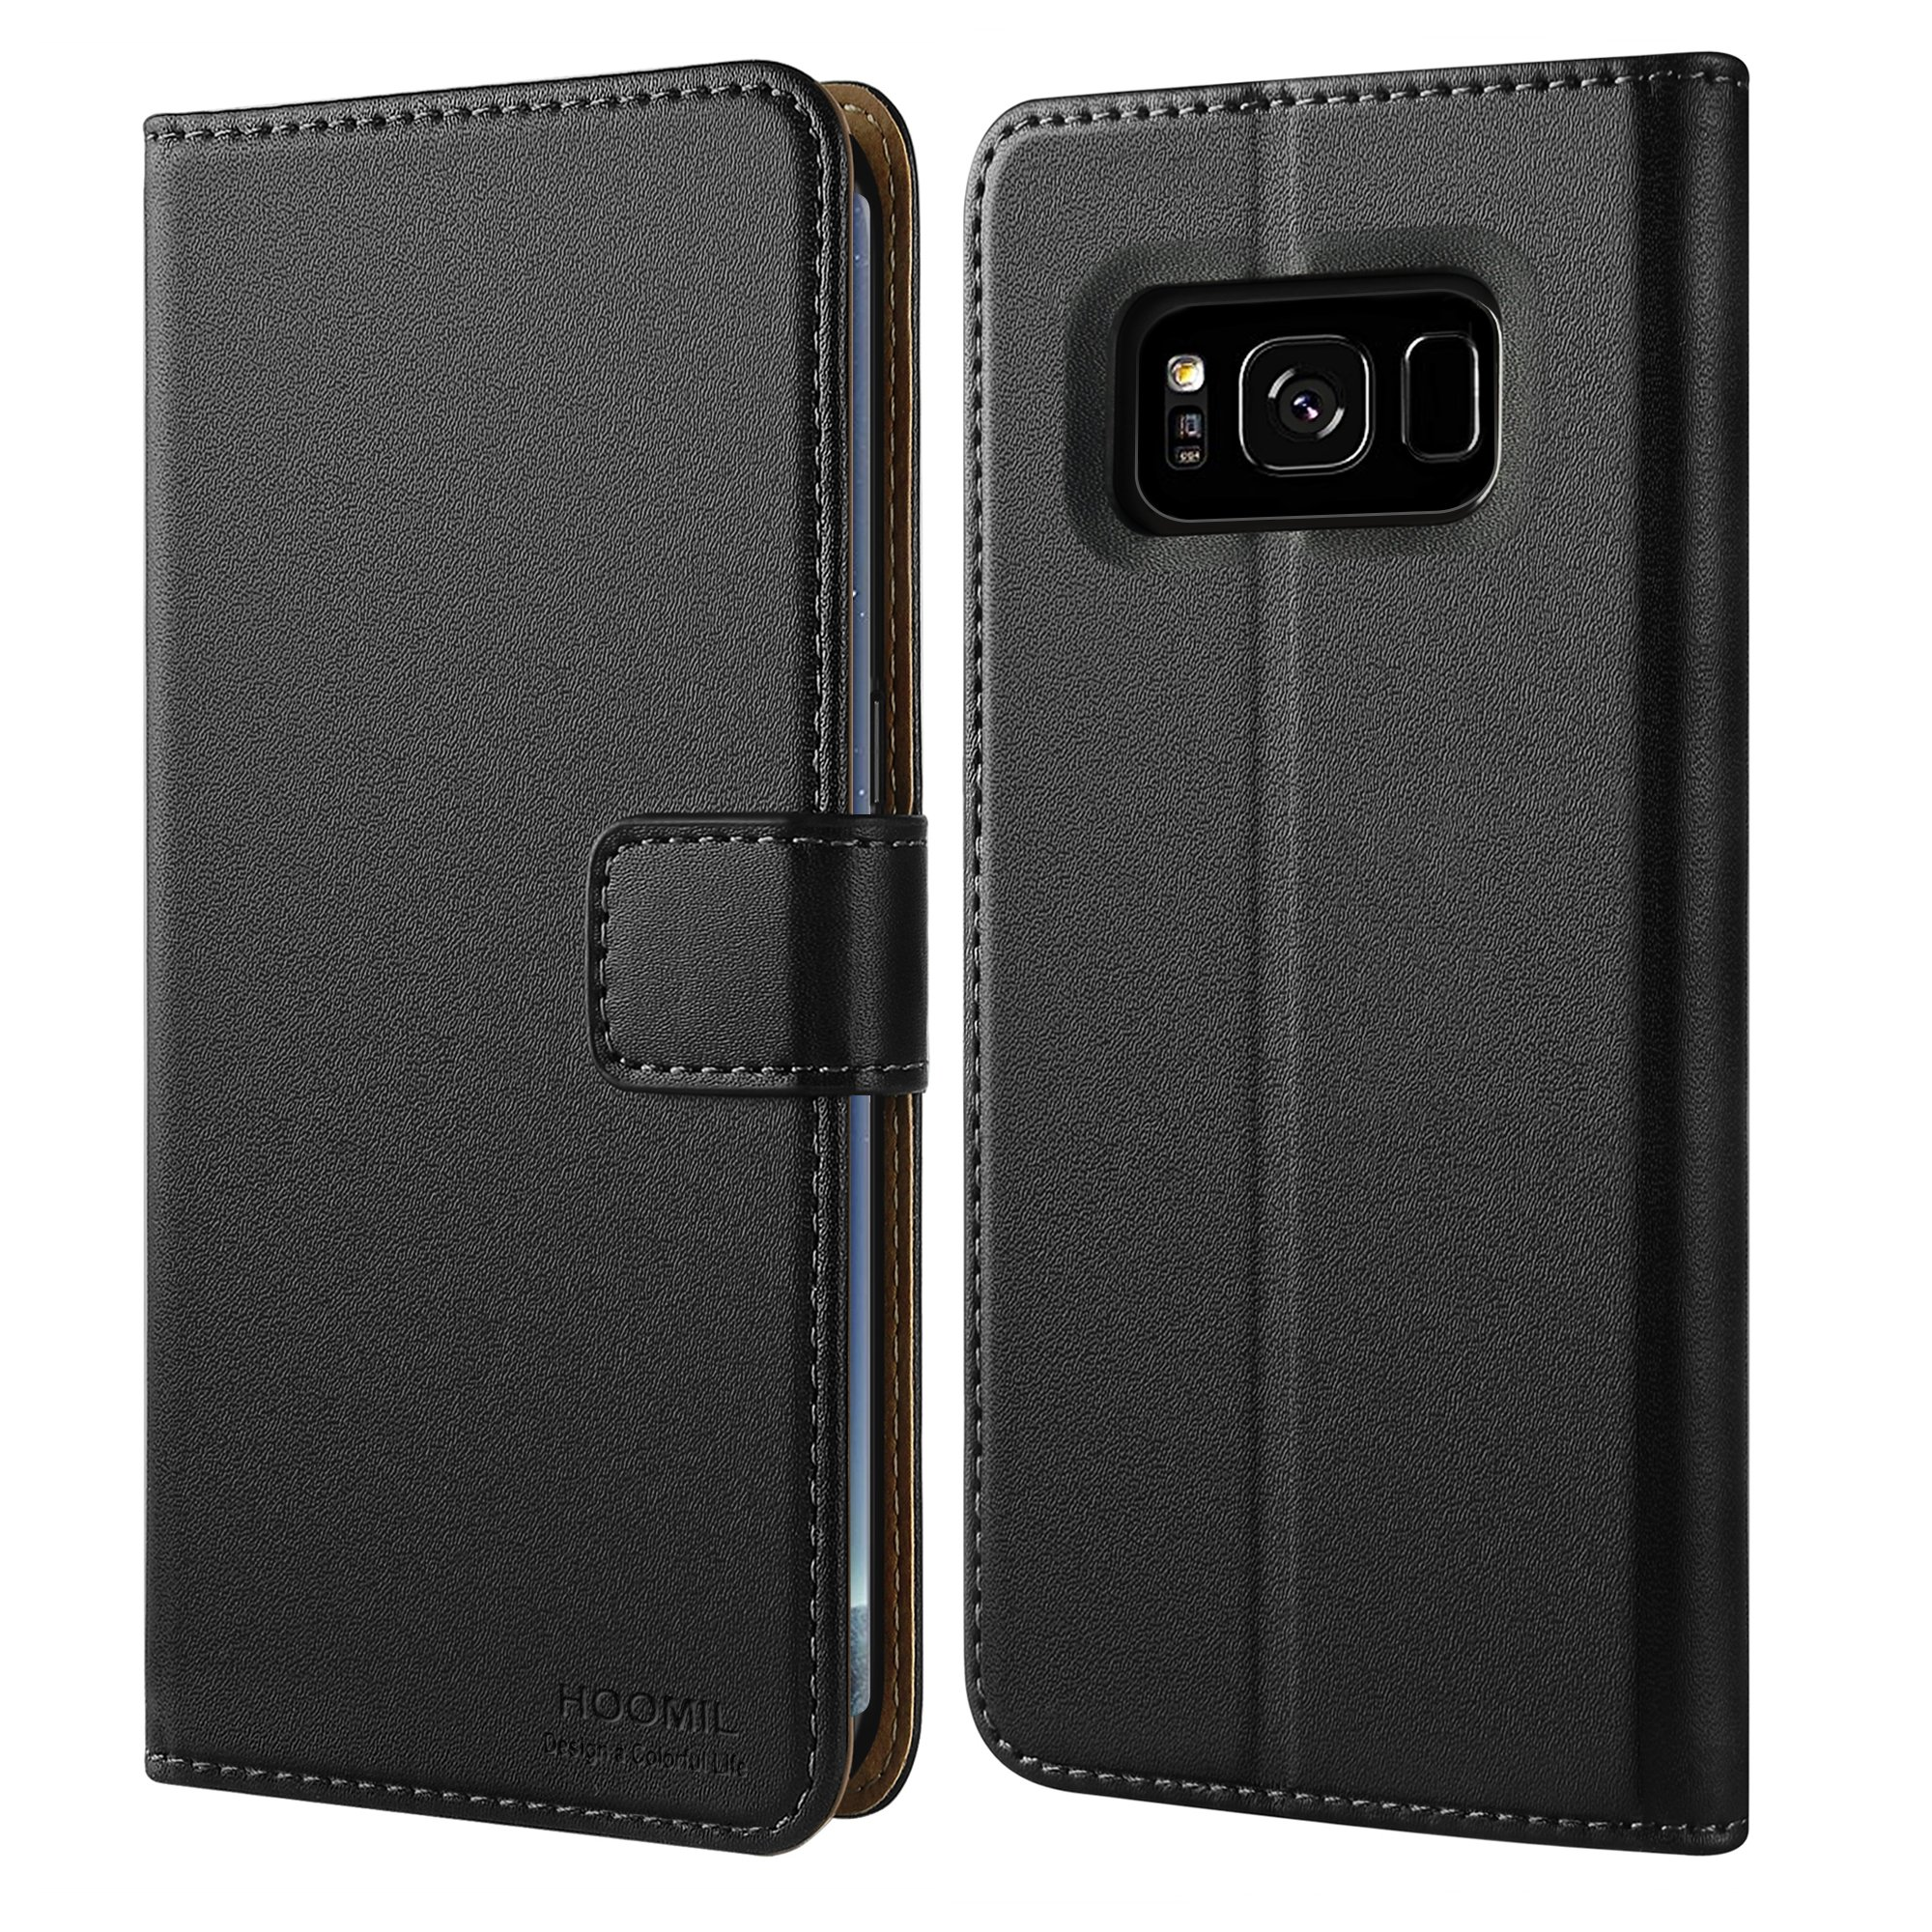 HOOMIL Galaxy S8 Plus Case Premium Leather Case Samsung Galaxy S8 Plus Phone Wallet Case Cover (Black)